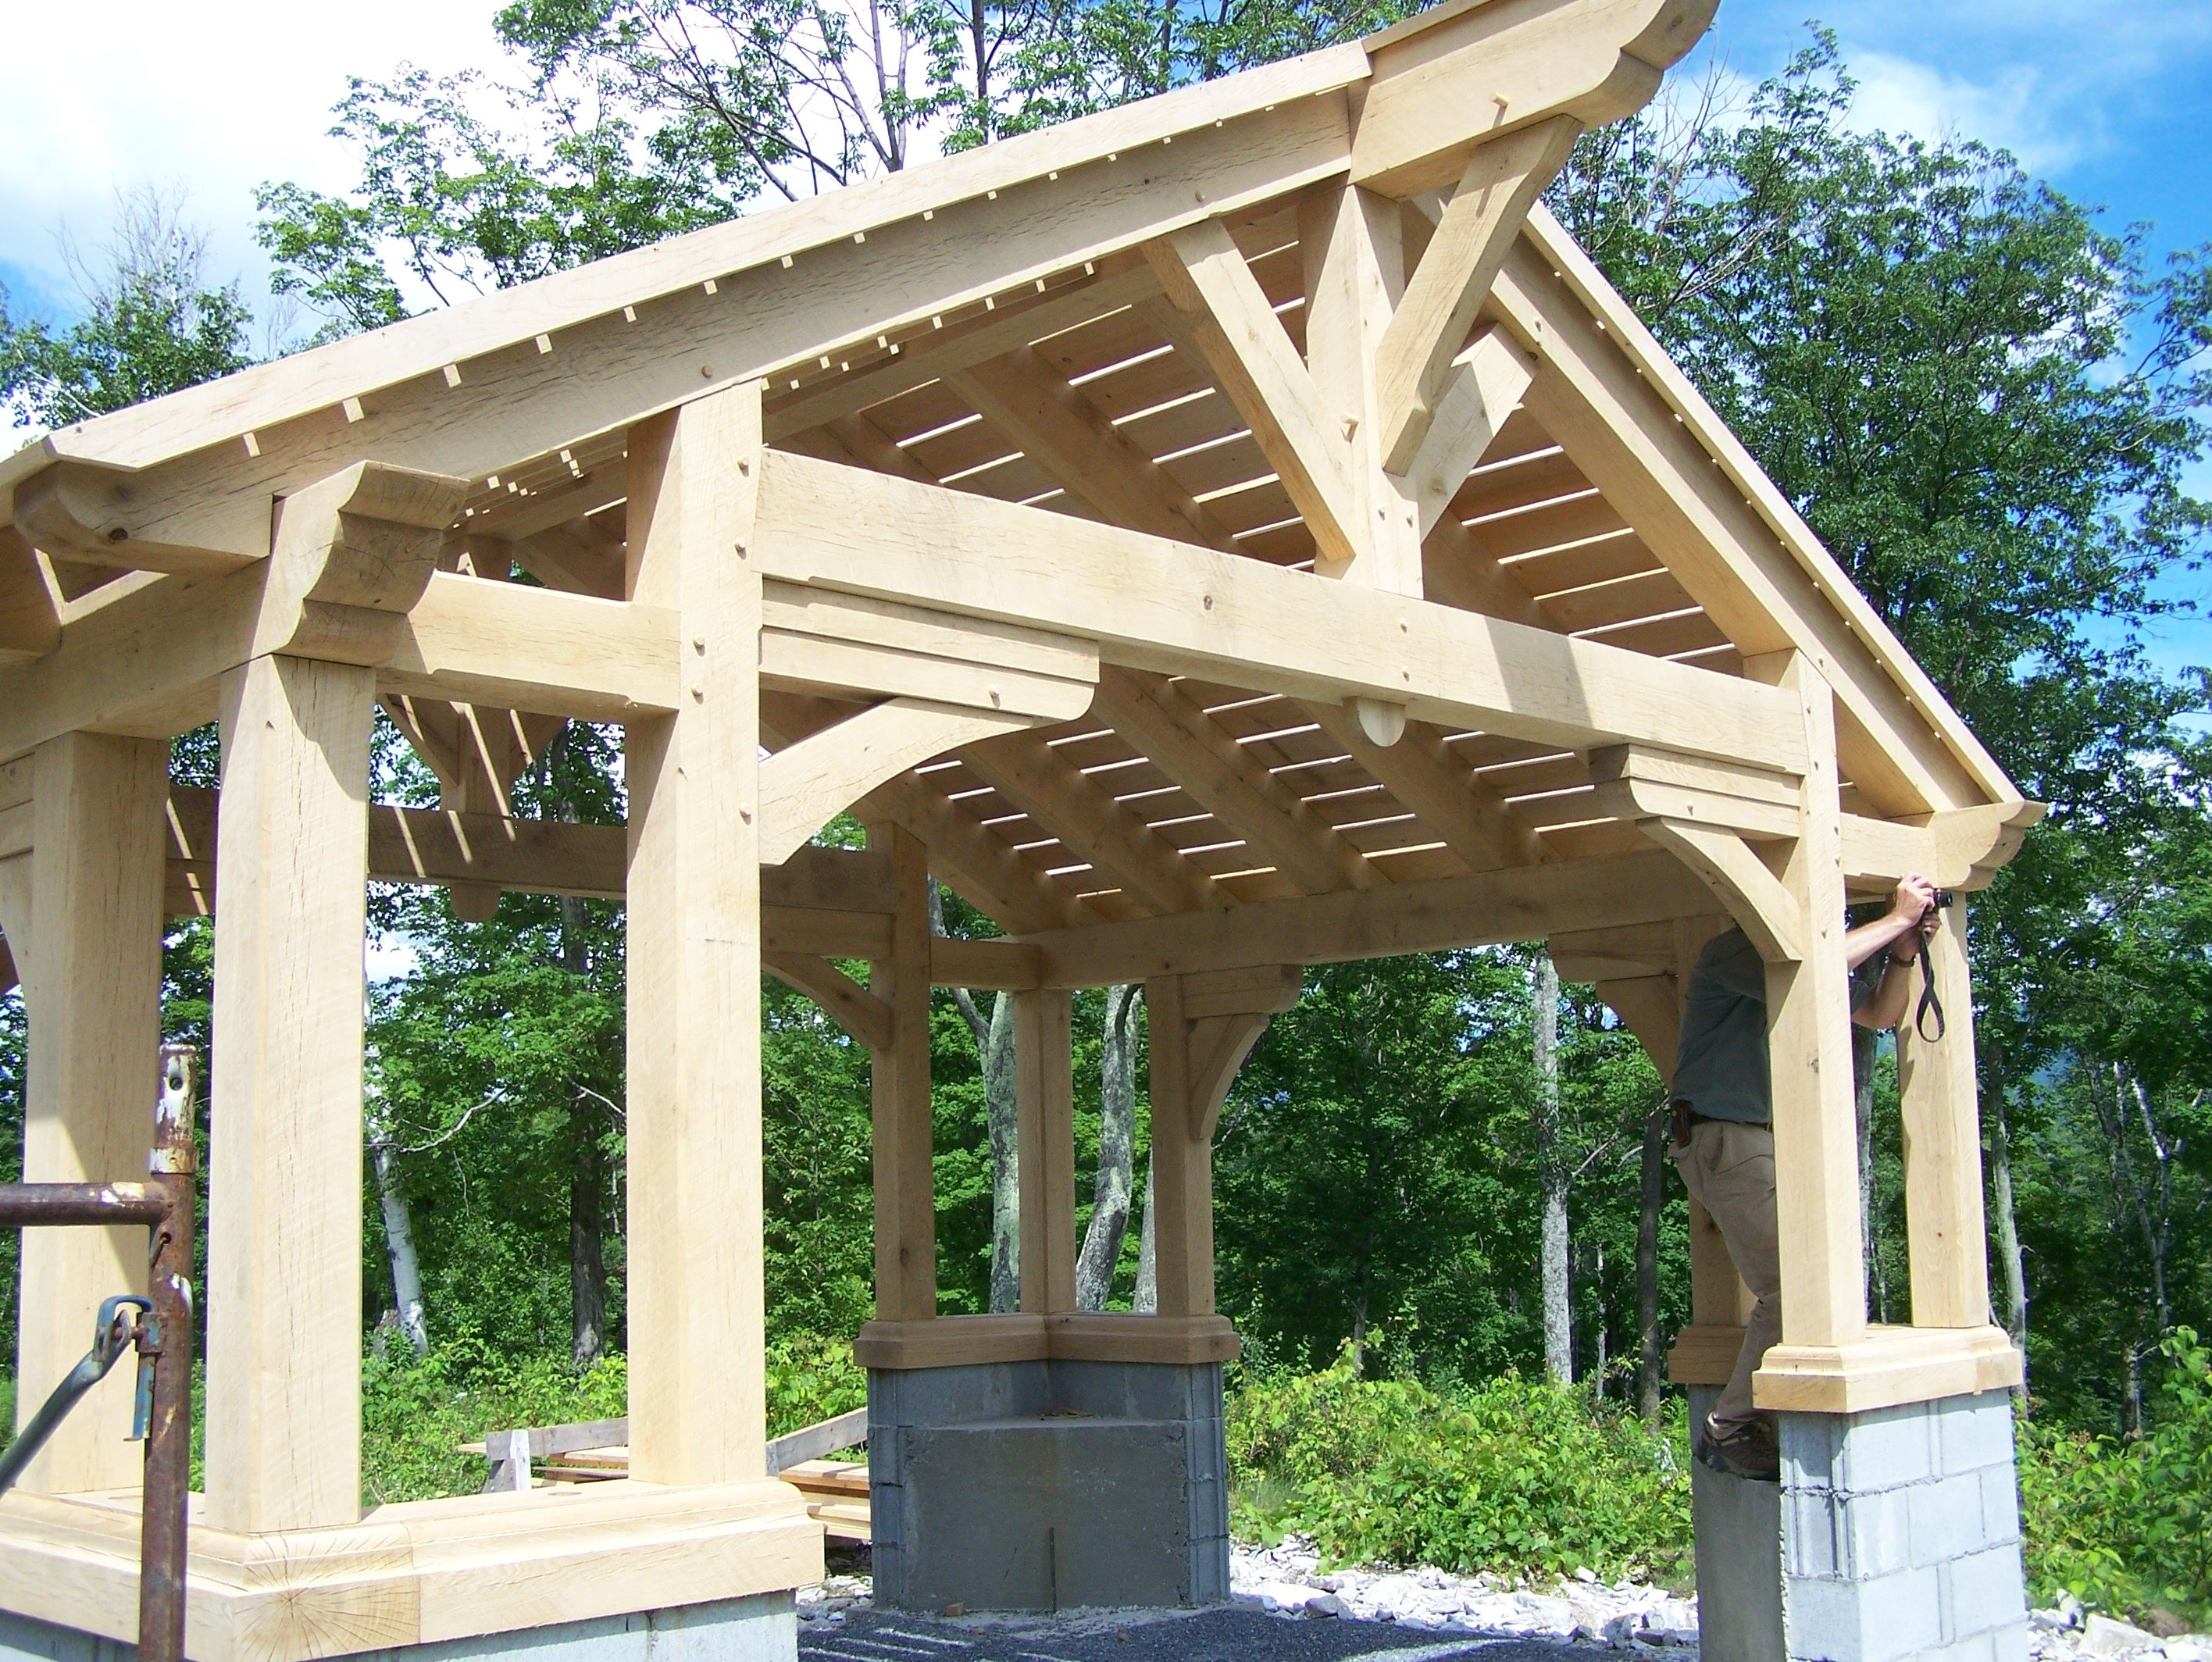 Historic Timber Frame Vermont American Arts And Crafts